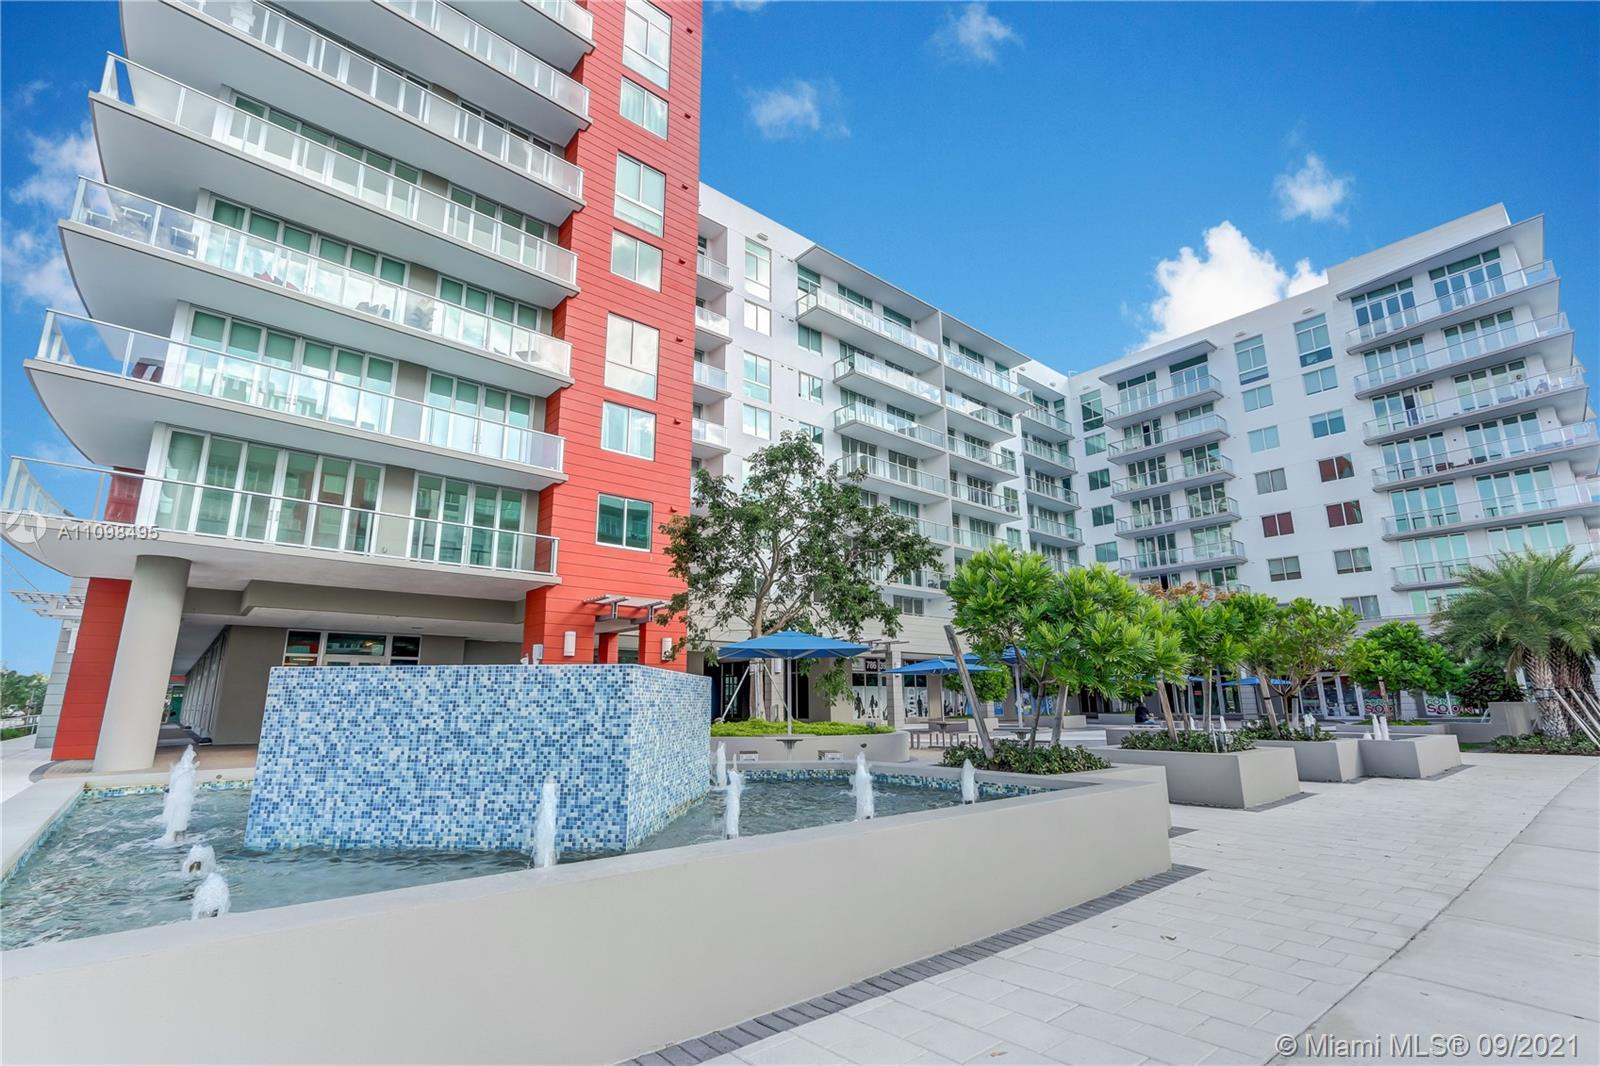 Midtown Doral - Building 3 #810 - 7825 NW 107th Ave #810, Doral, FL 33178